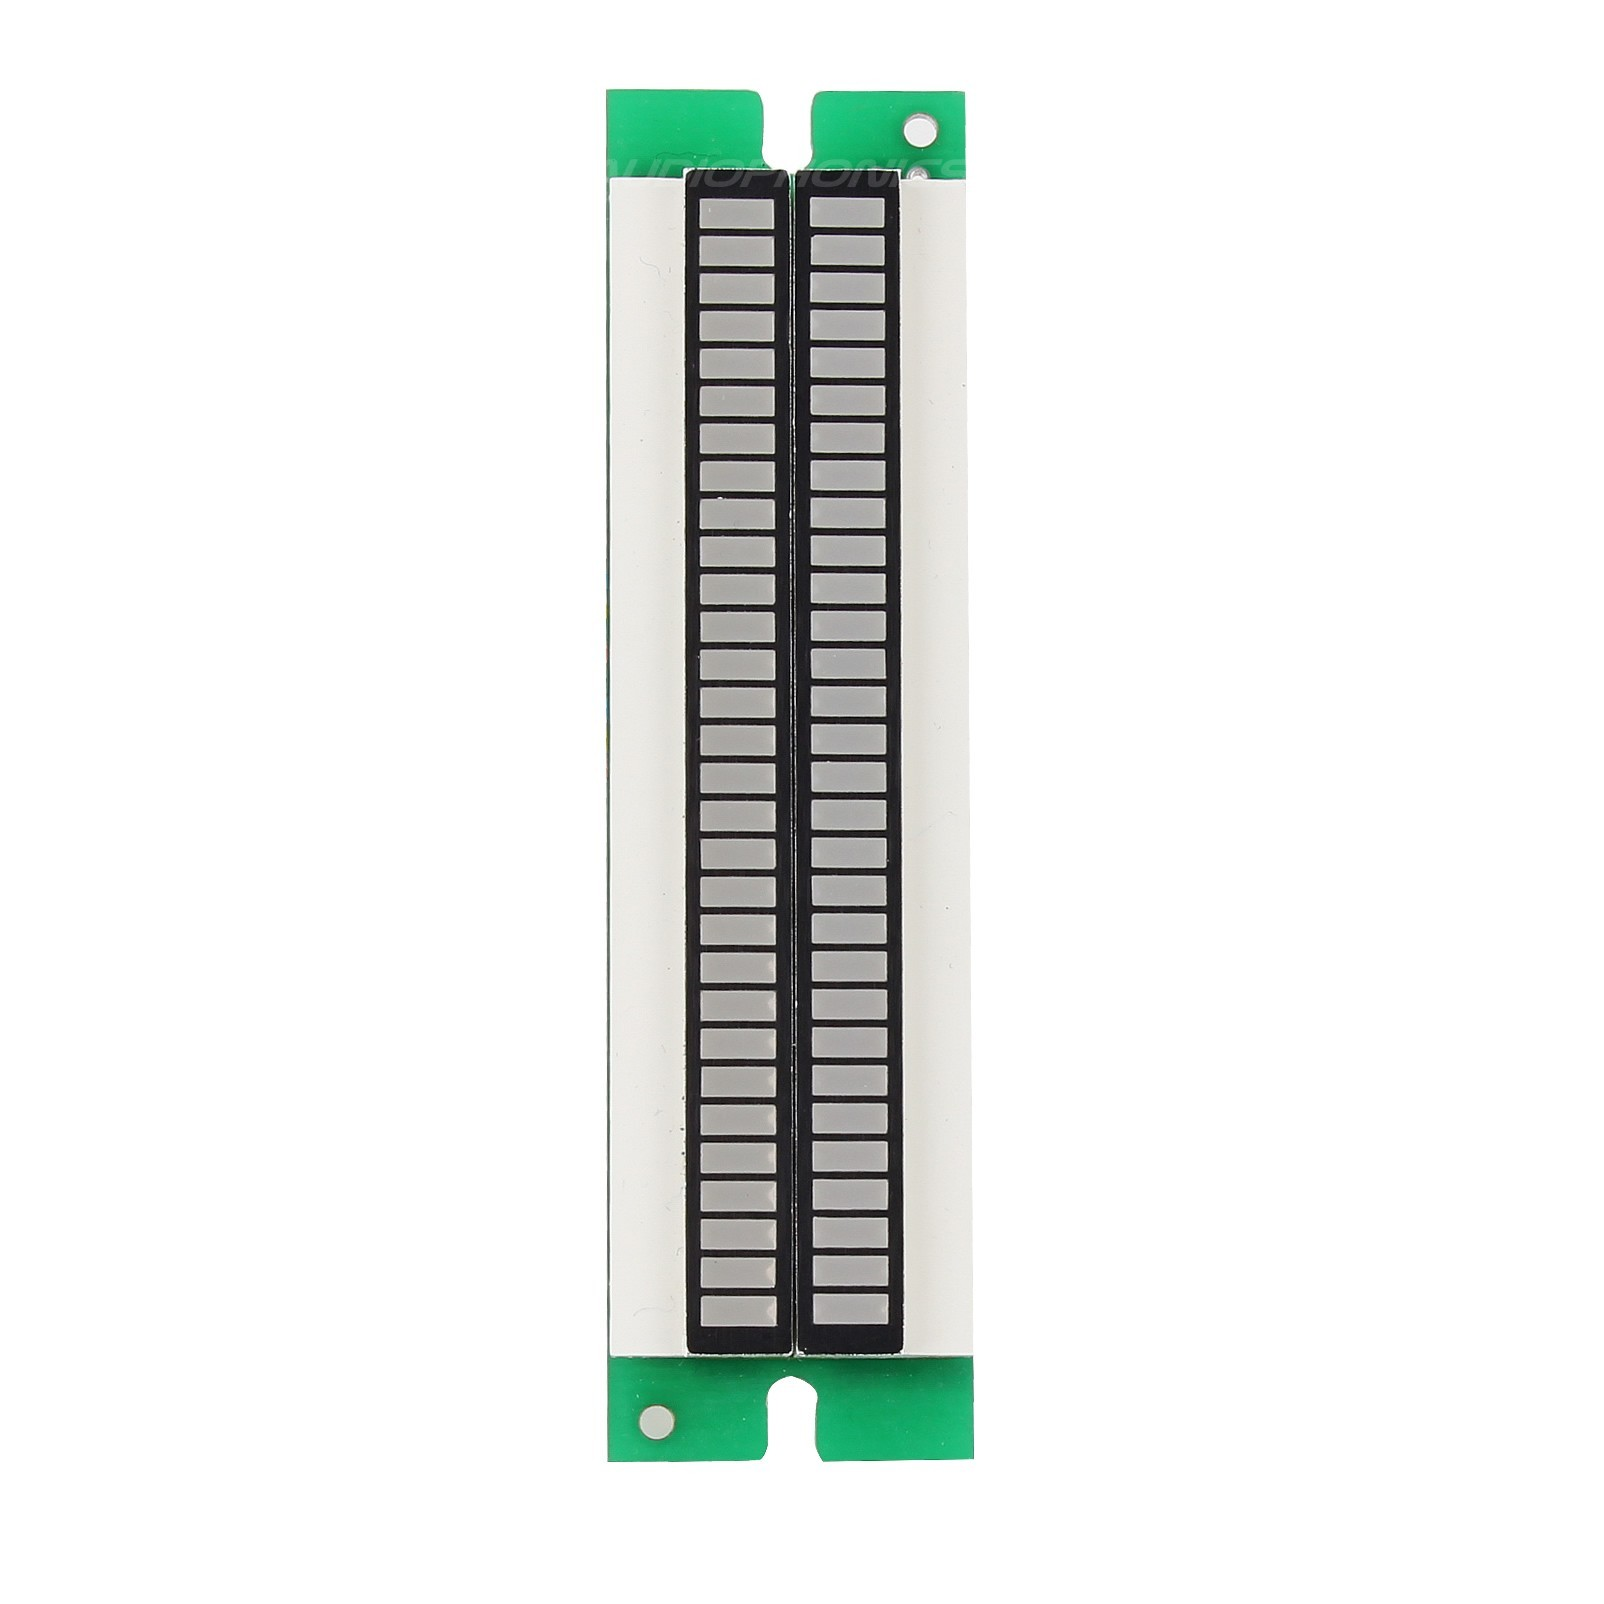 led bar graph vu meter dual column to display voltage